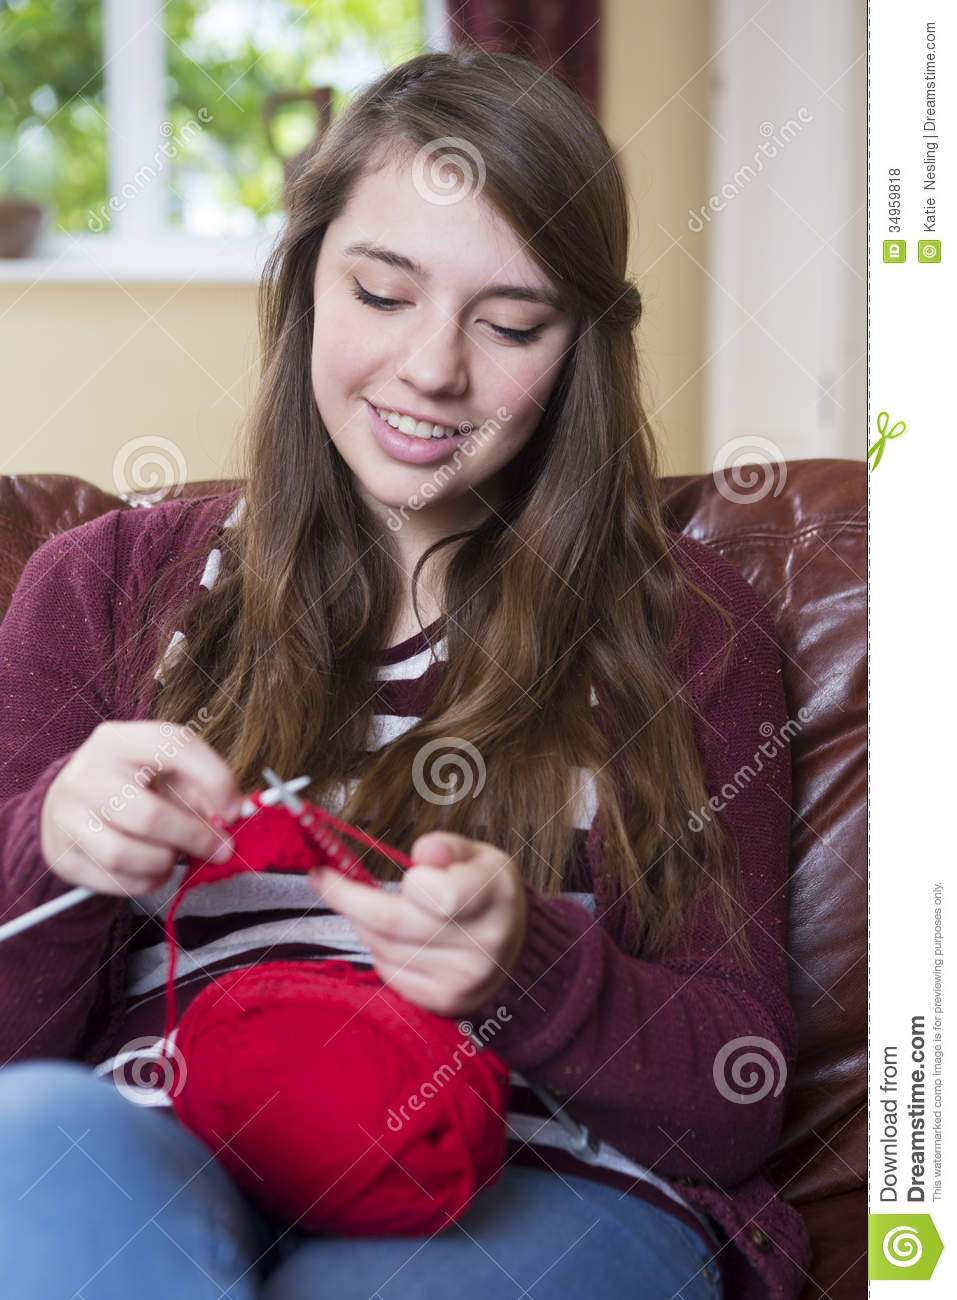 teenage girl knitting at home stock photo image of smiling thread 34959818. Black Bedroom Furniture Sets. Home Design Ideas